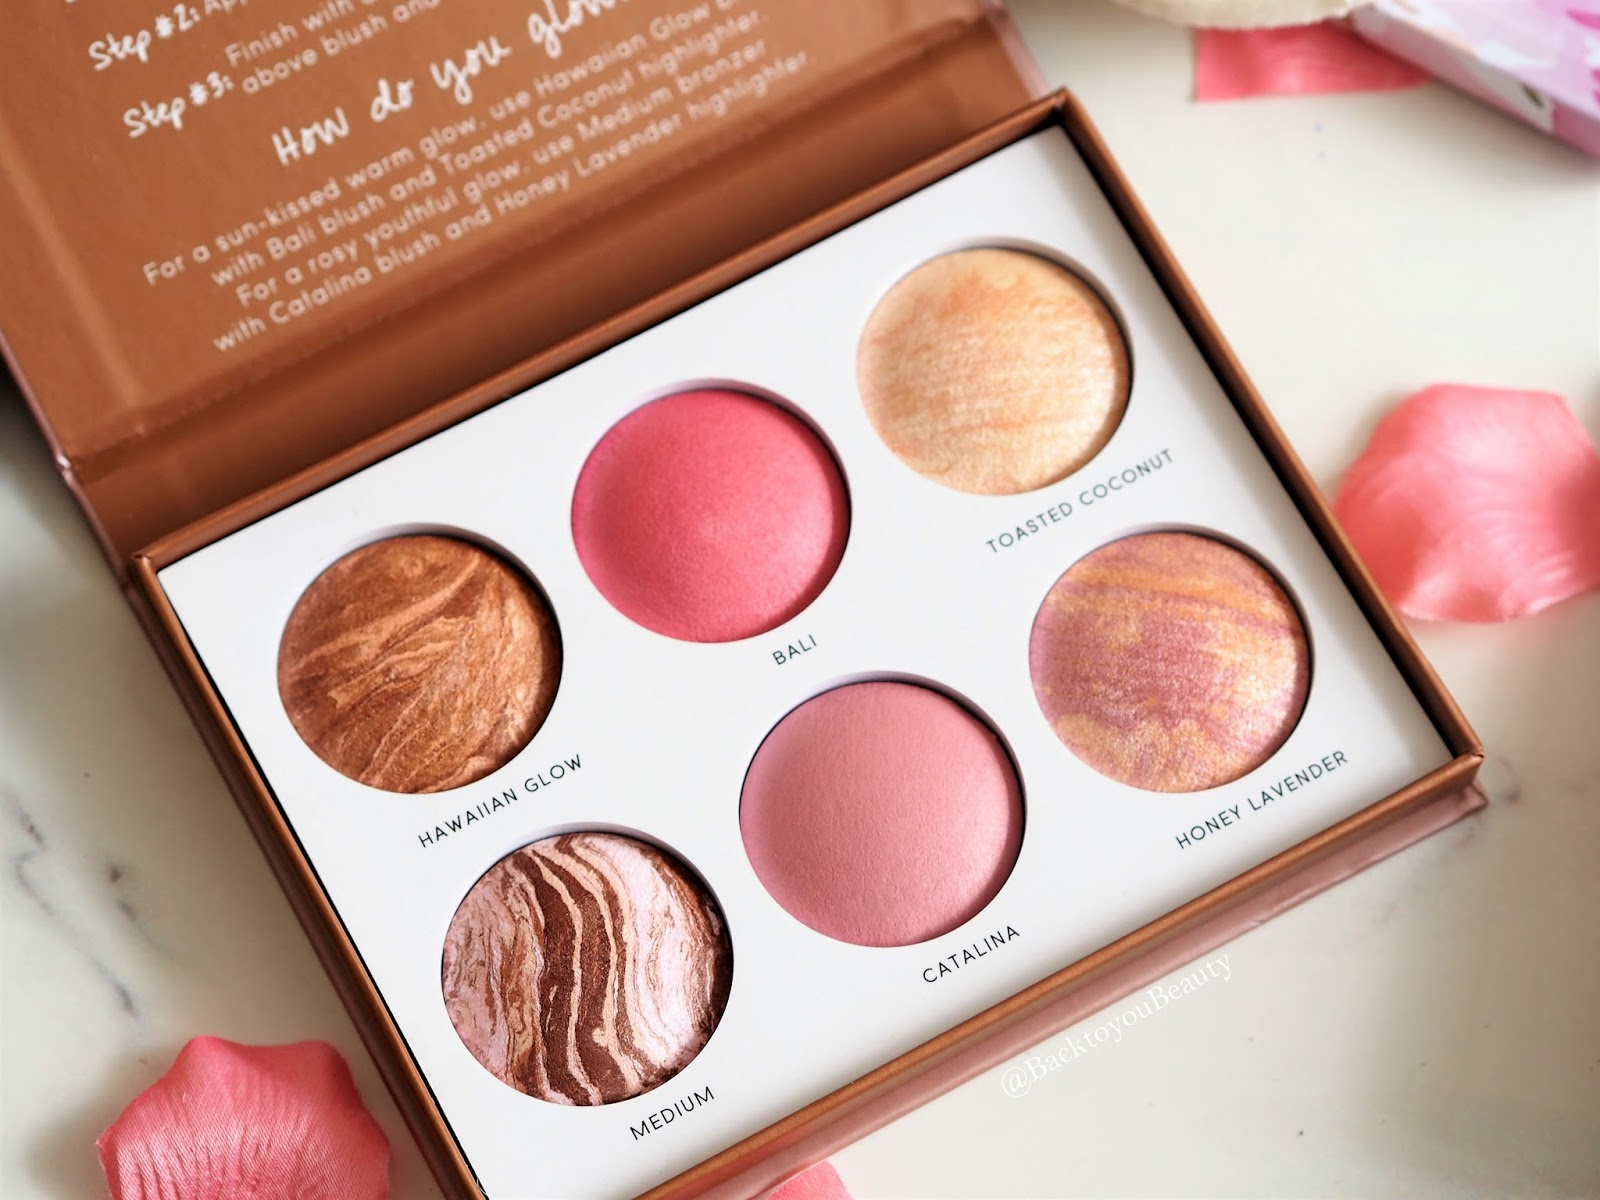 Cheek-to-Chic Blush Highlighter Bronzer palette